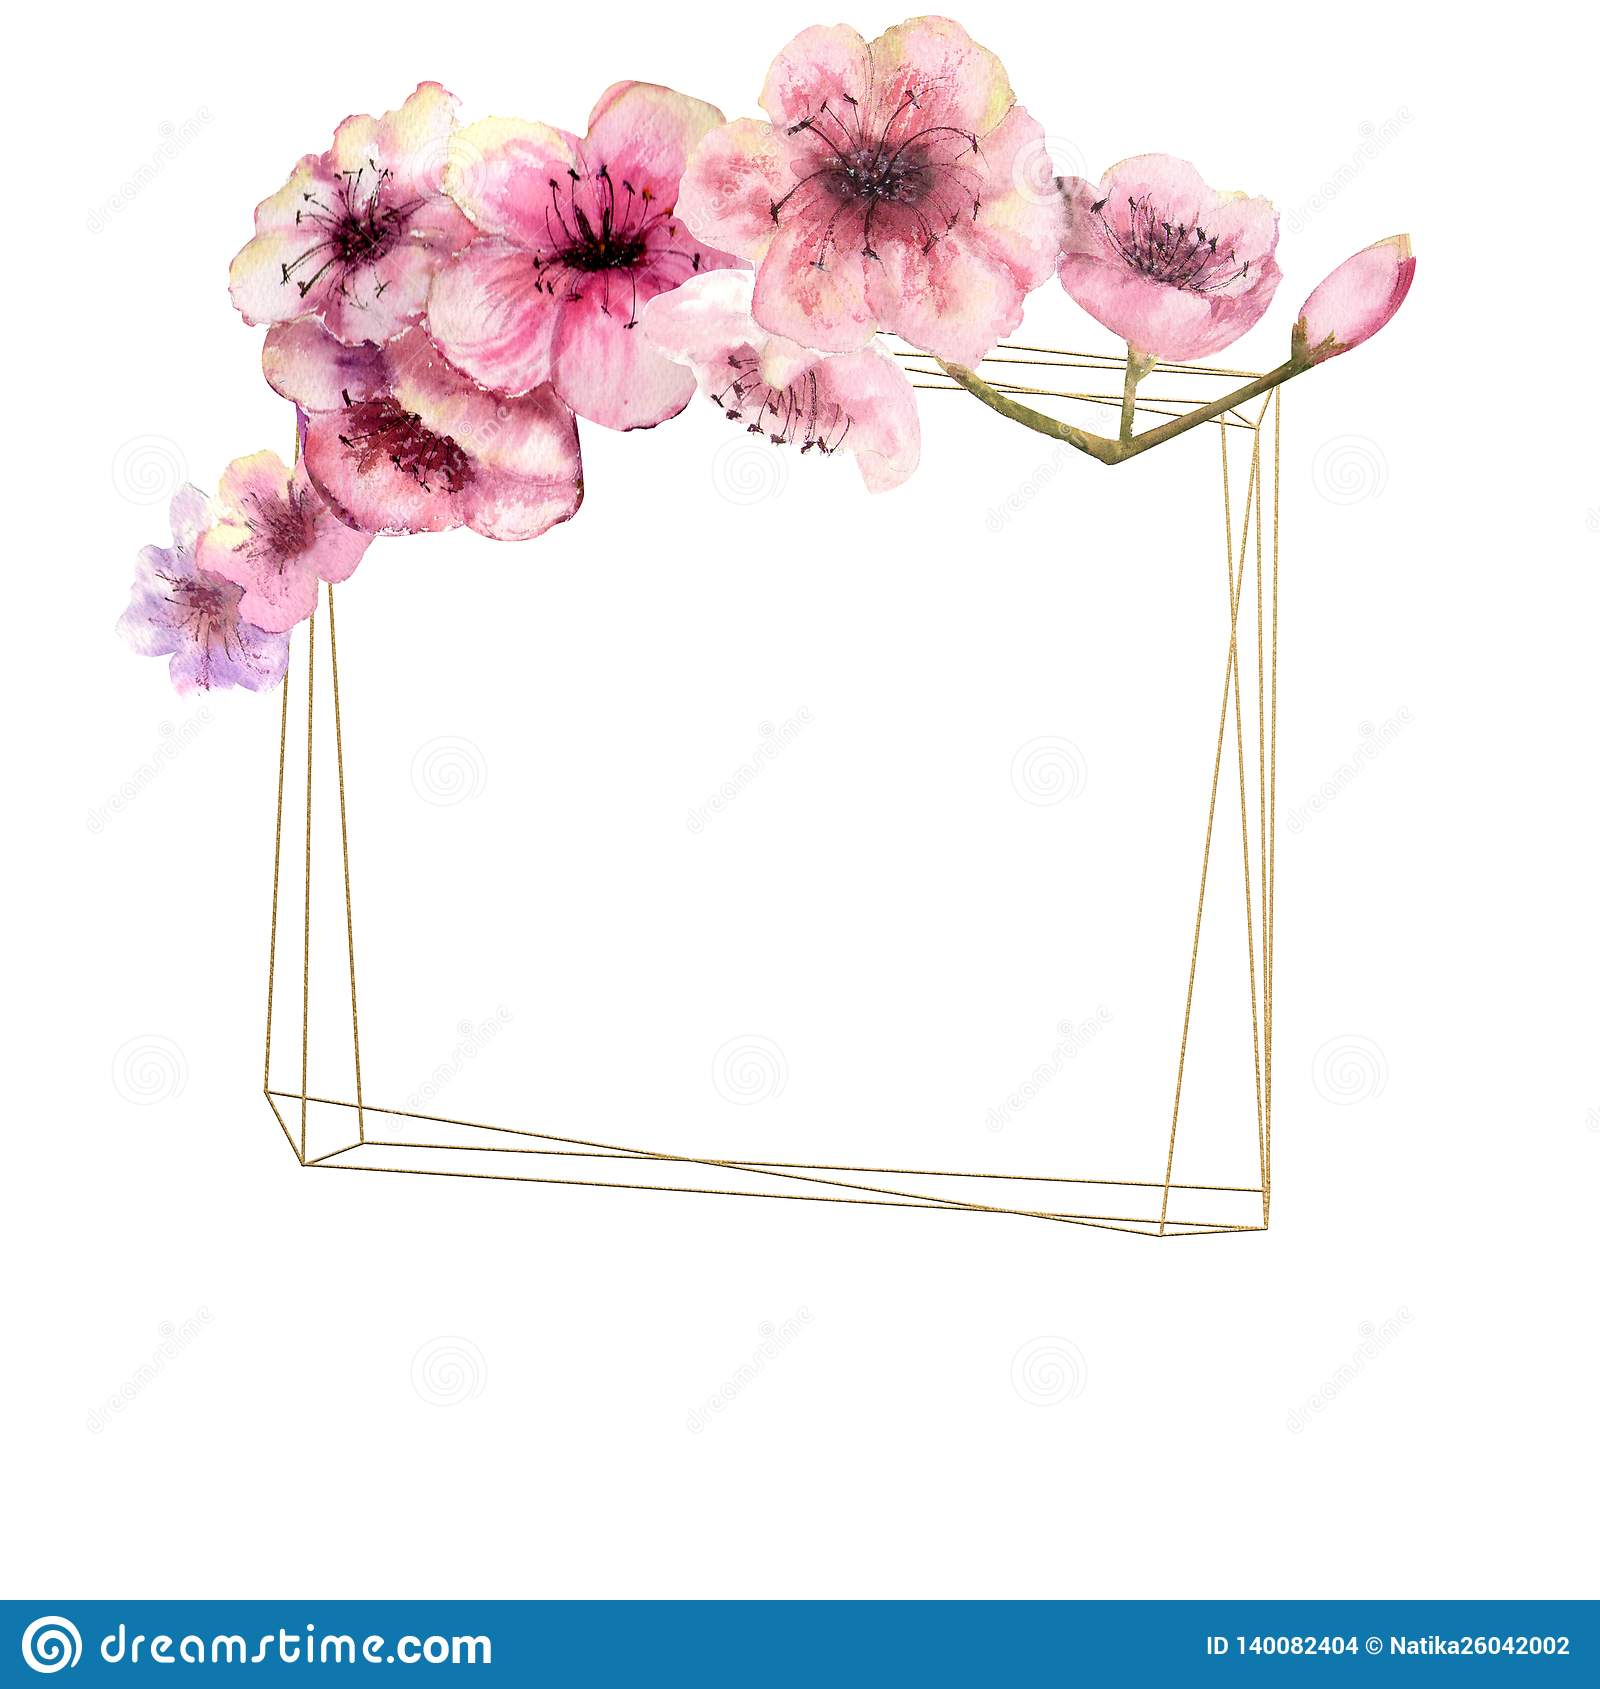 Cherry Blossom Sakura Branch With Pink Flowers On Gold Frame And Isolated White Background Image Of Spring Frame Watercolor Stock Illustration Illustration Of Background Cherry 140082404